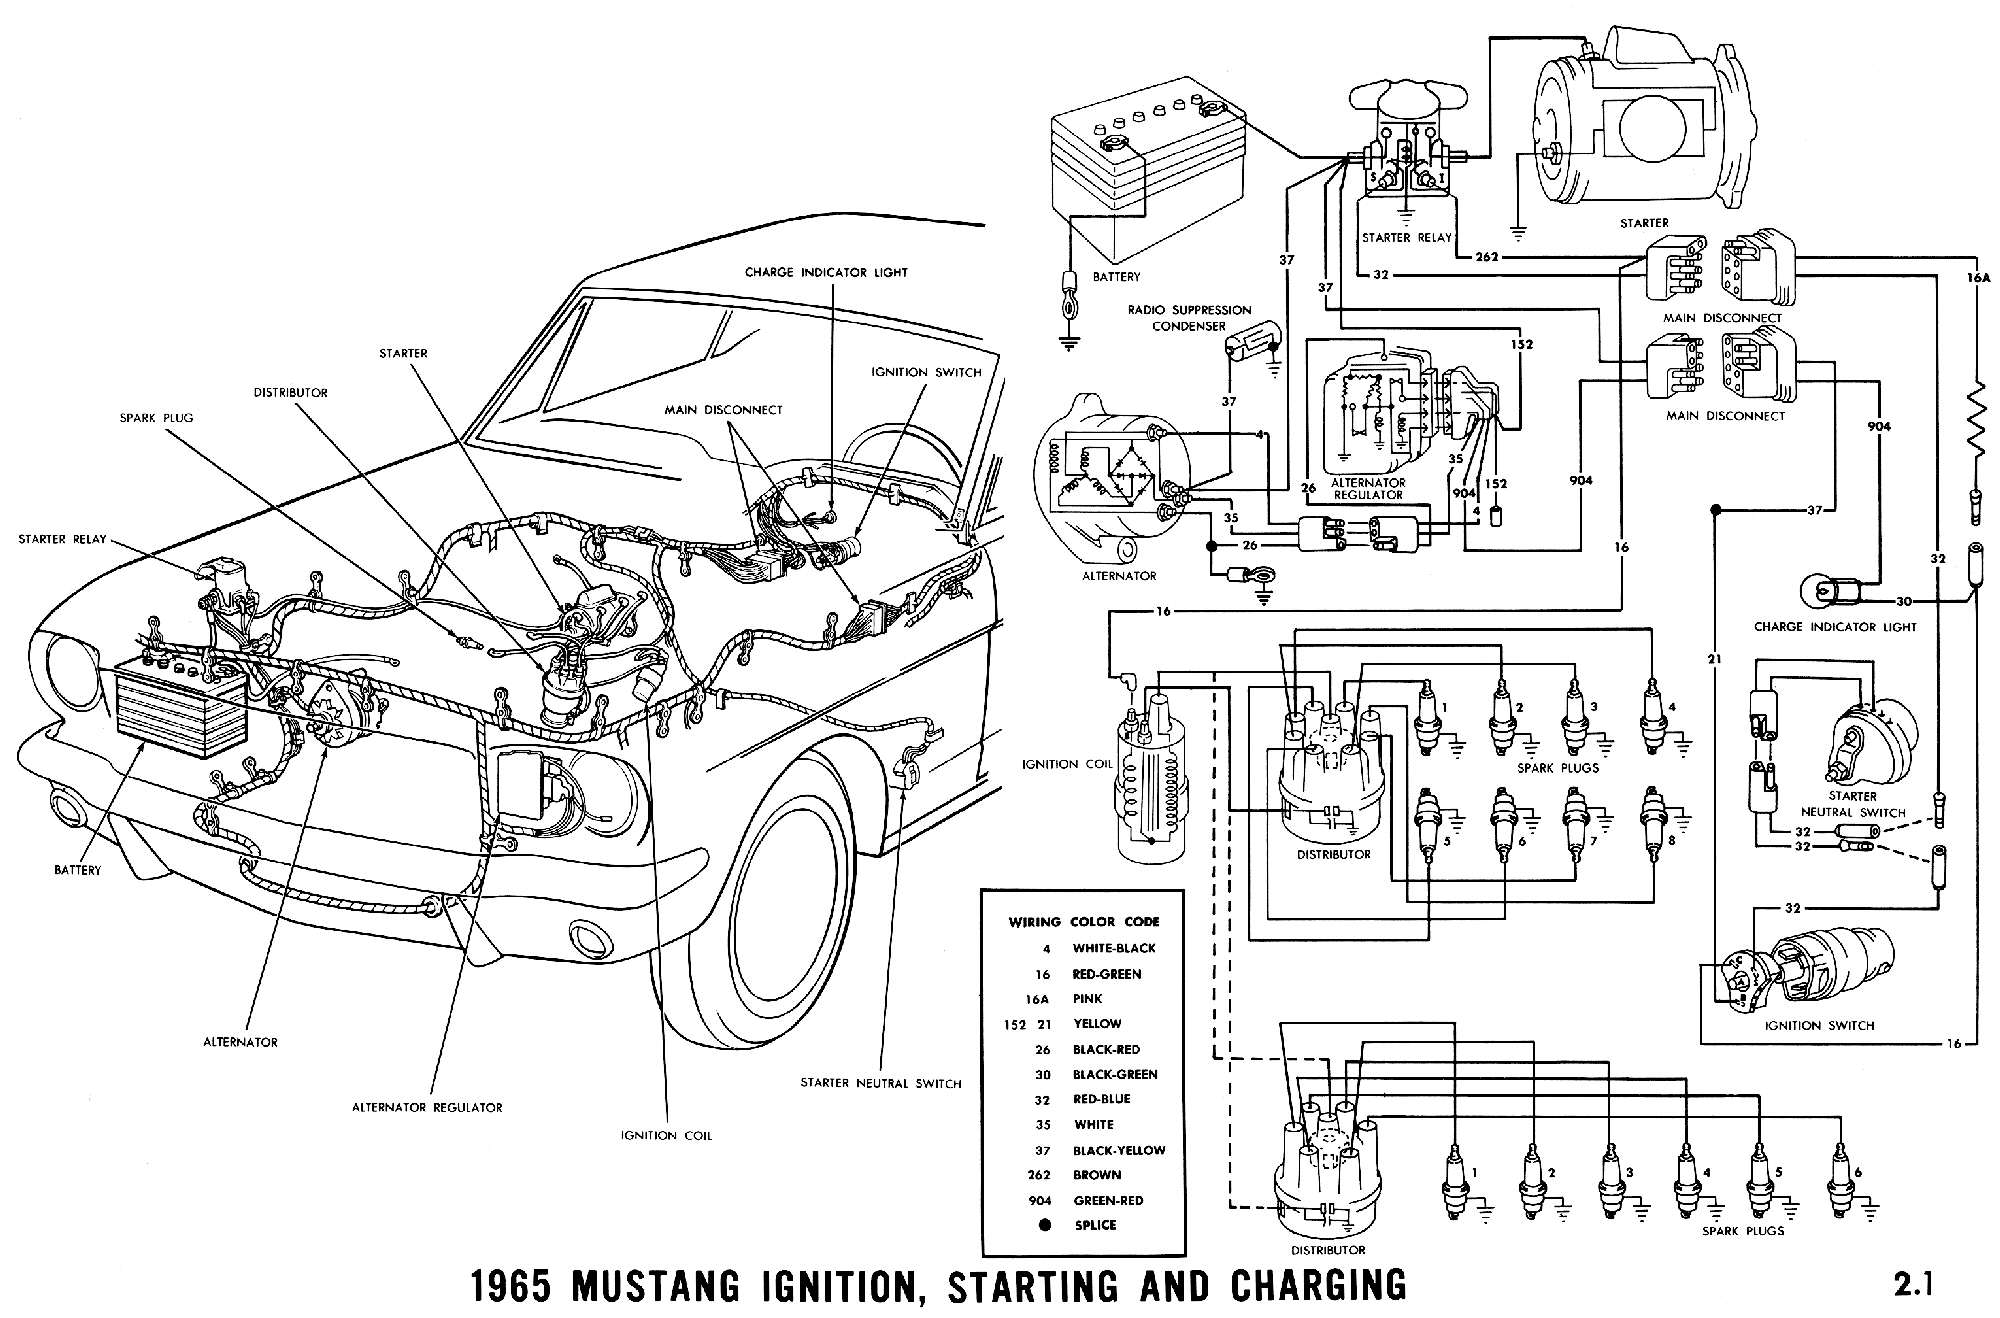 1965 Mustang Power Draw